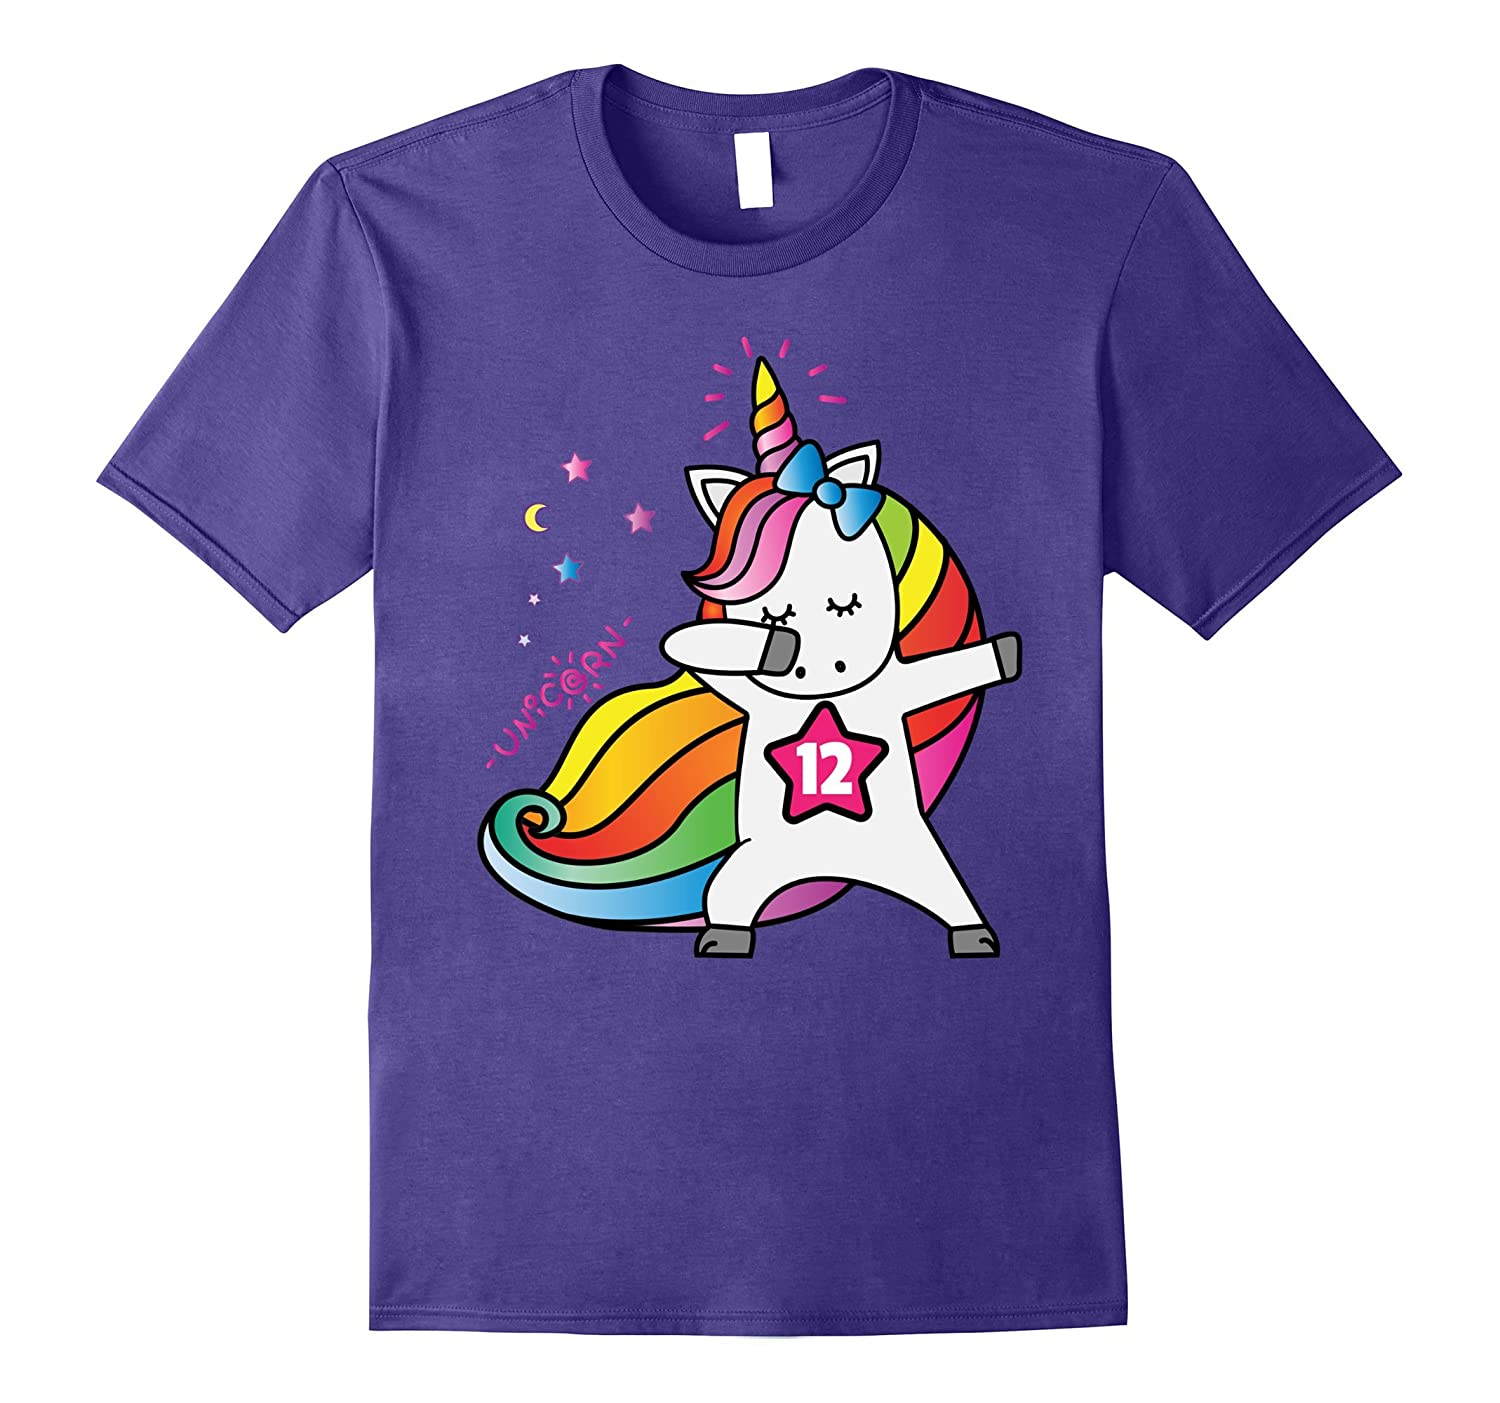 12th Birthday Shirt Birthday Girl 12 Unicorn T-Shirt July-Art